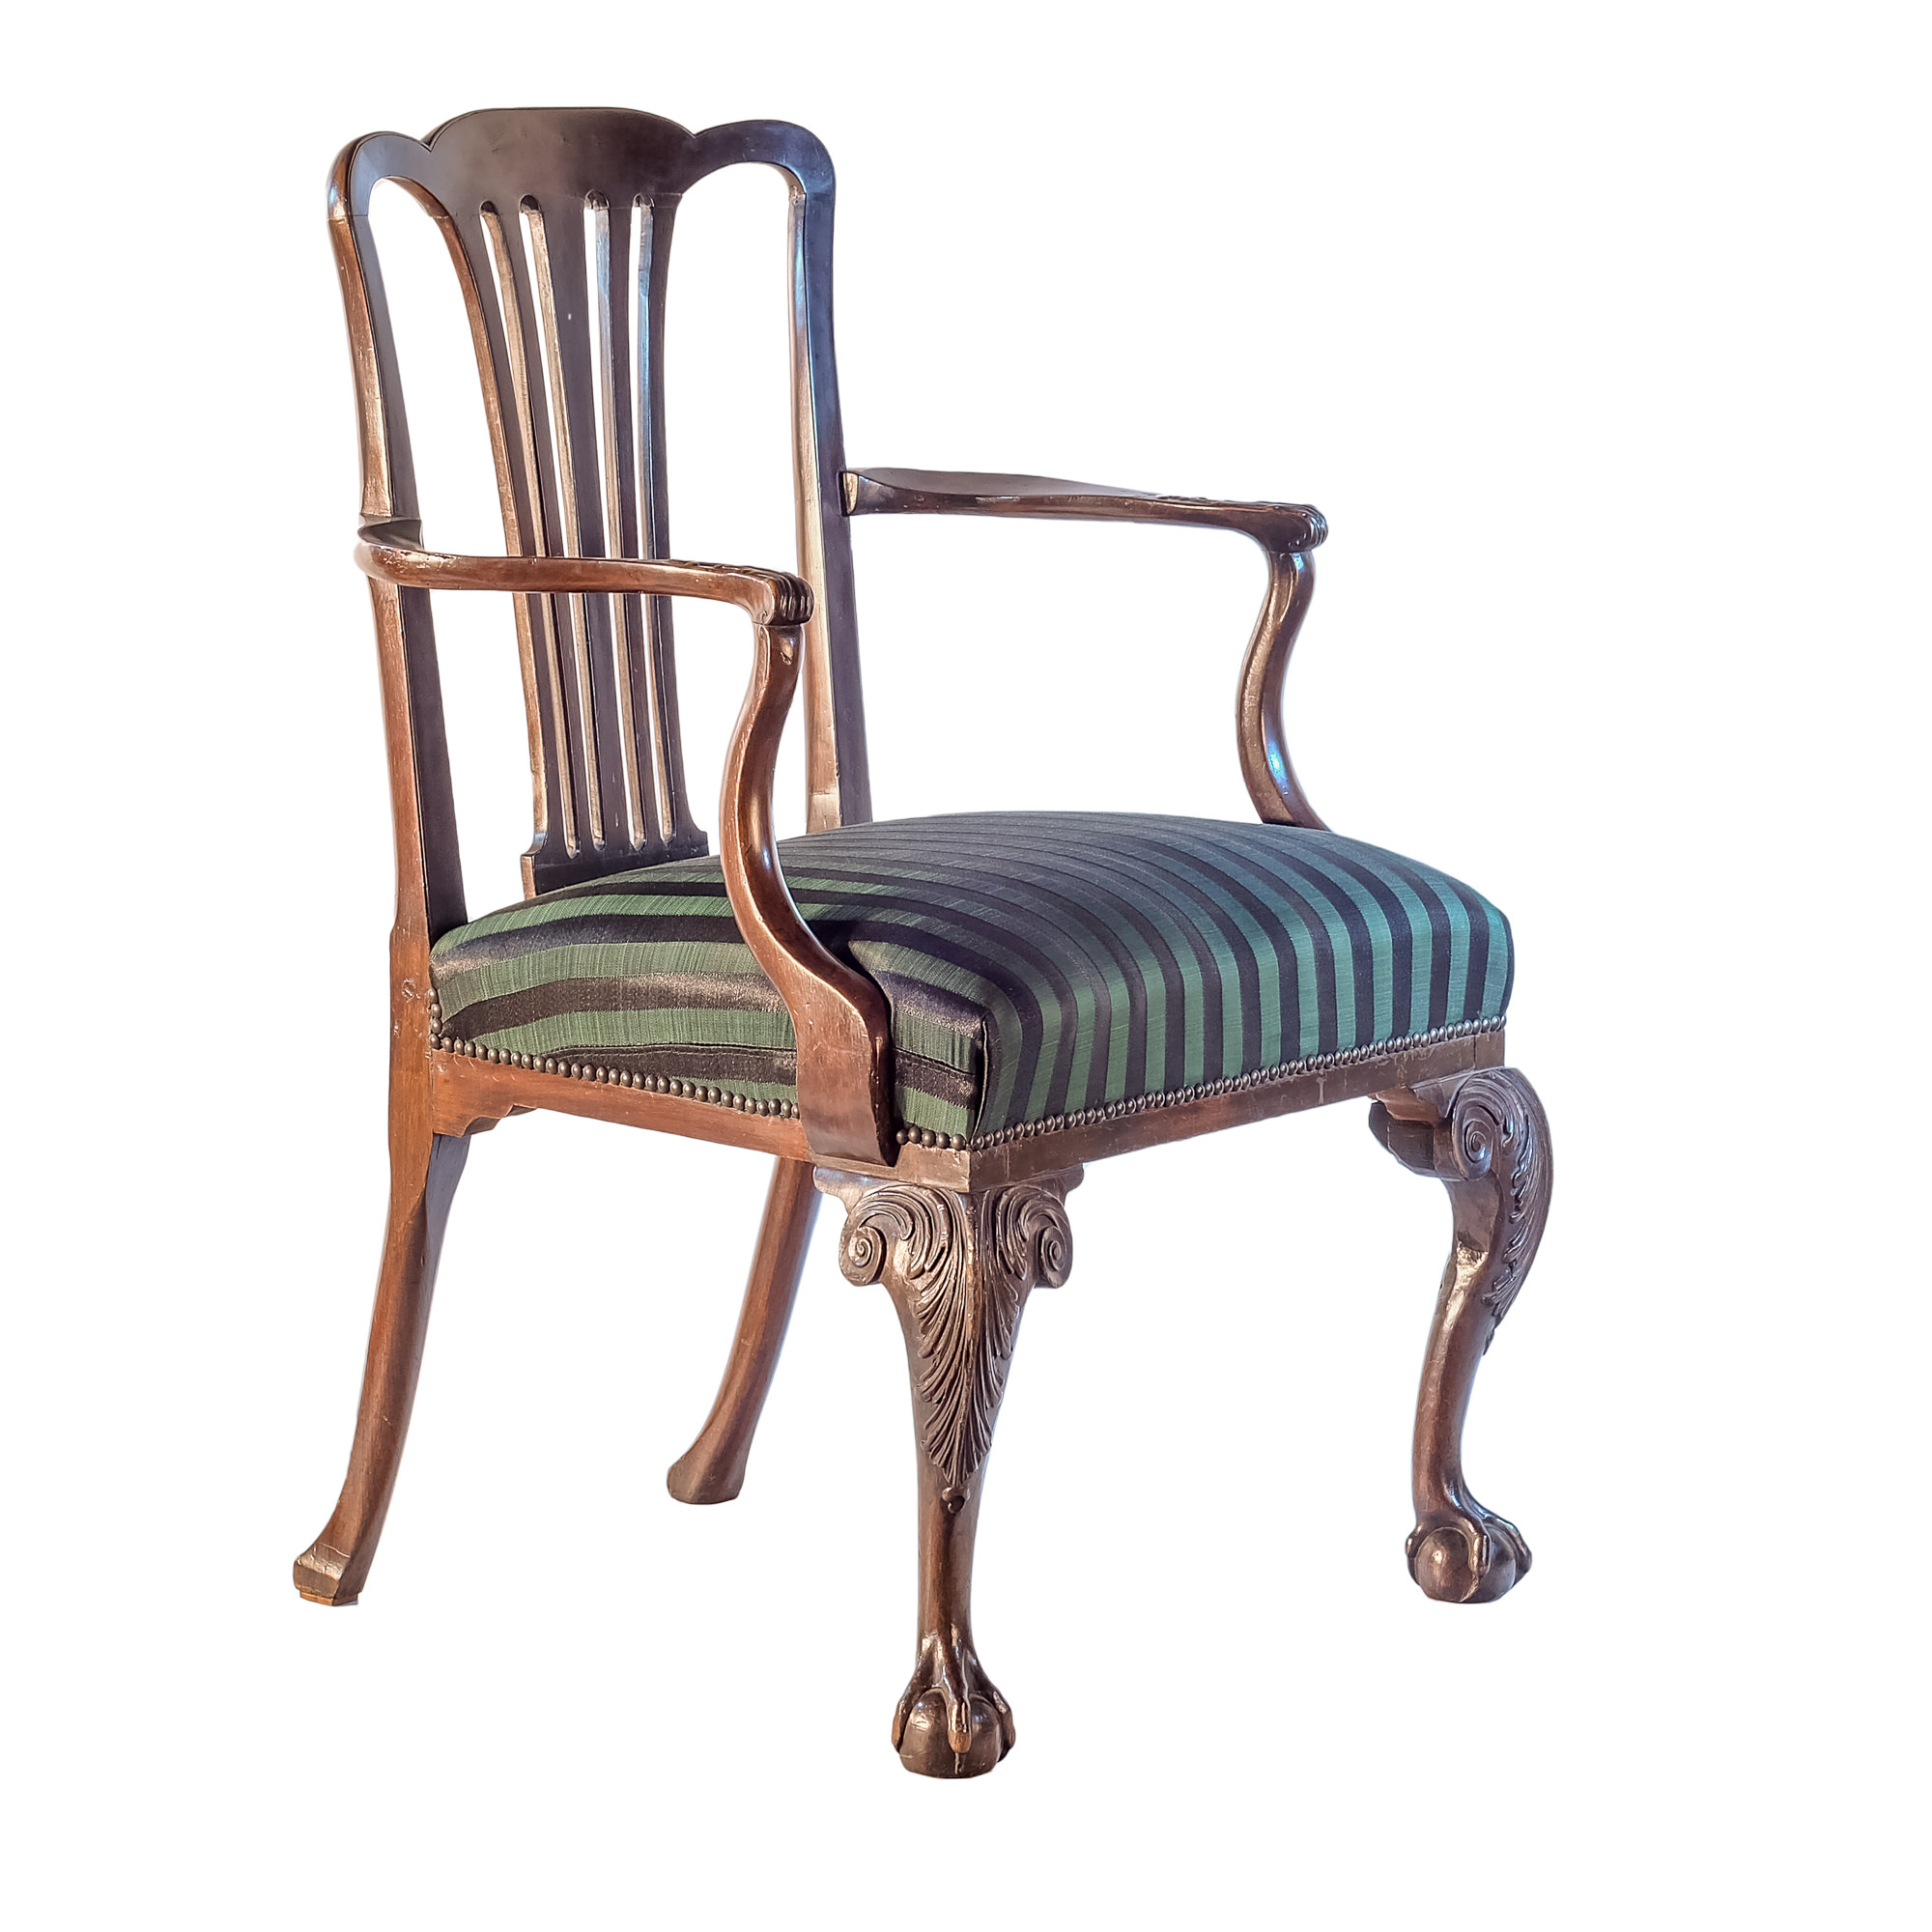 'Large Proportioned Chippendale Style Mahogany Elbow Chair 19th Century'